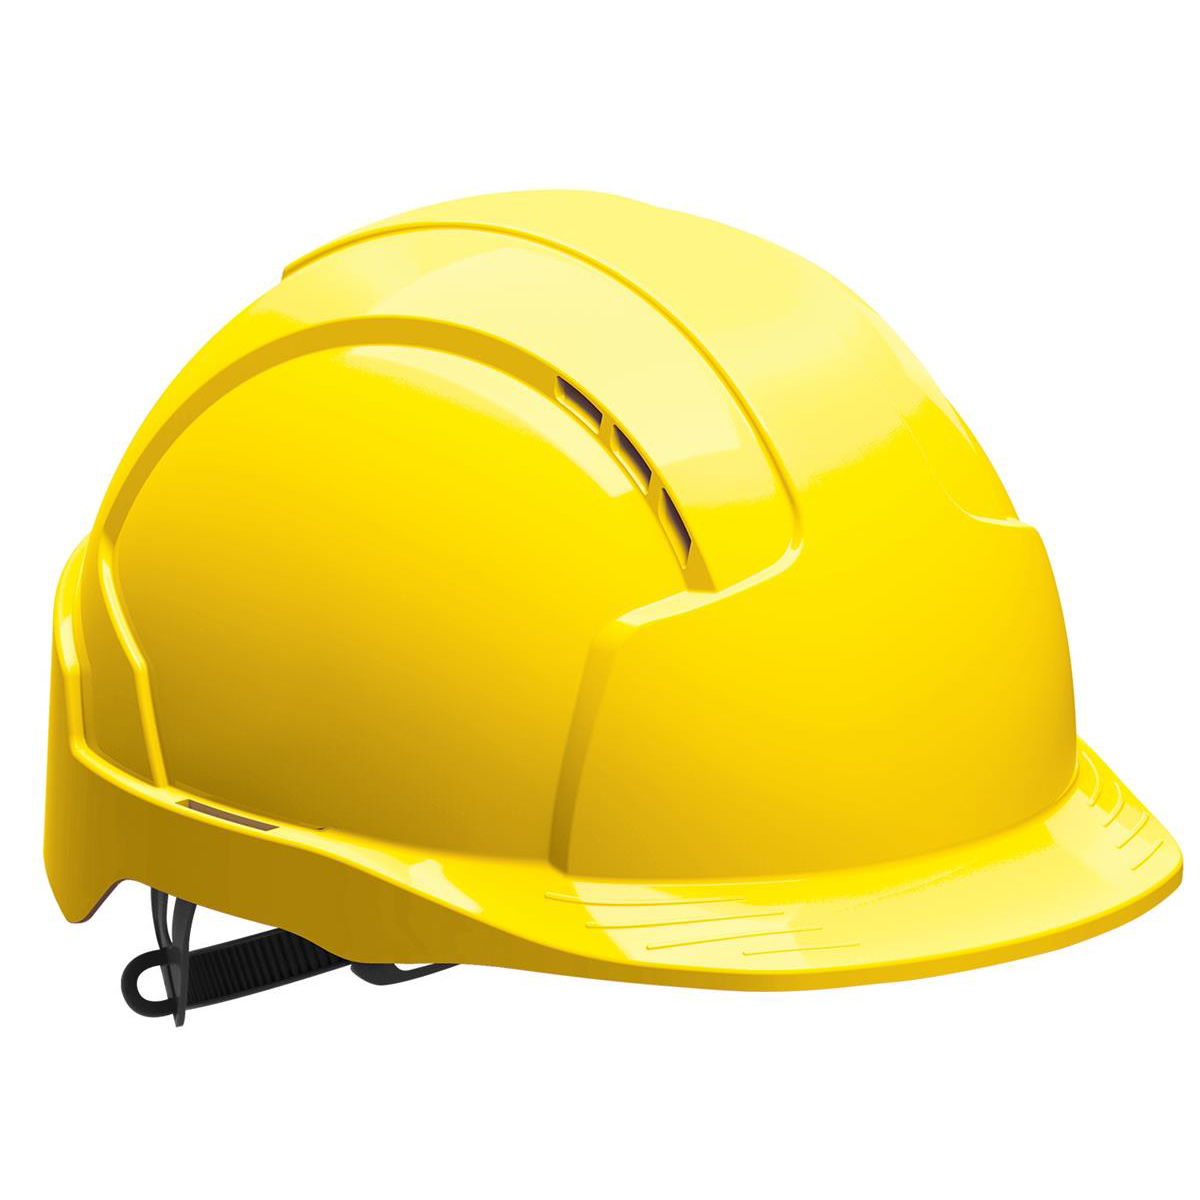 Safety helmets JSP EVOLite Safety Helmet ABS 6-point Terylene Harness EN397 Standard Yellow Ref AJB160-000-200